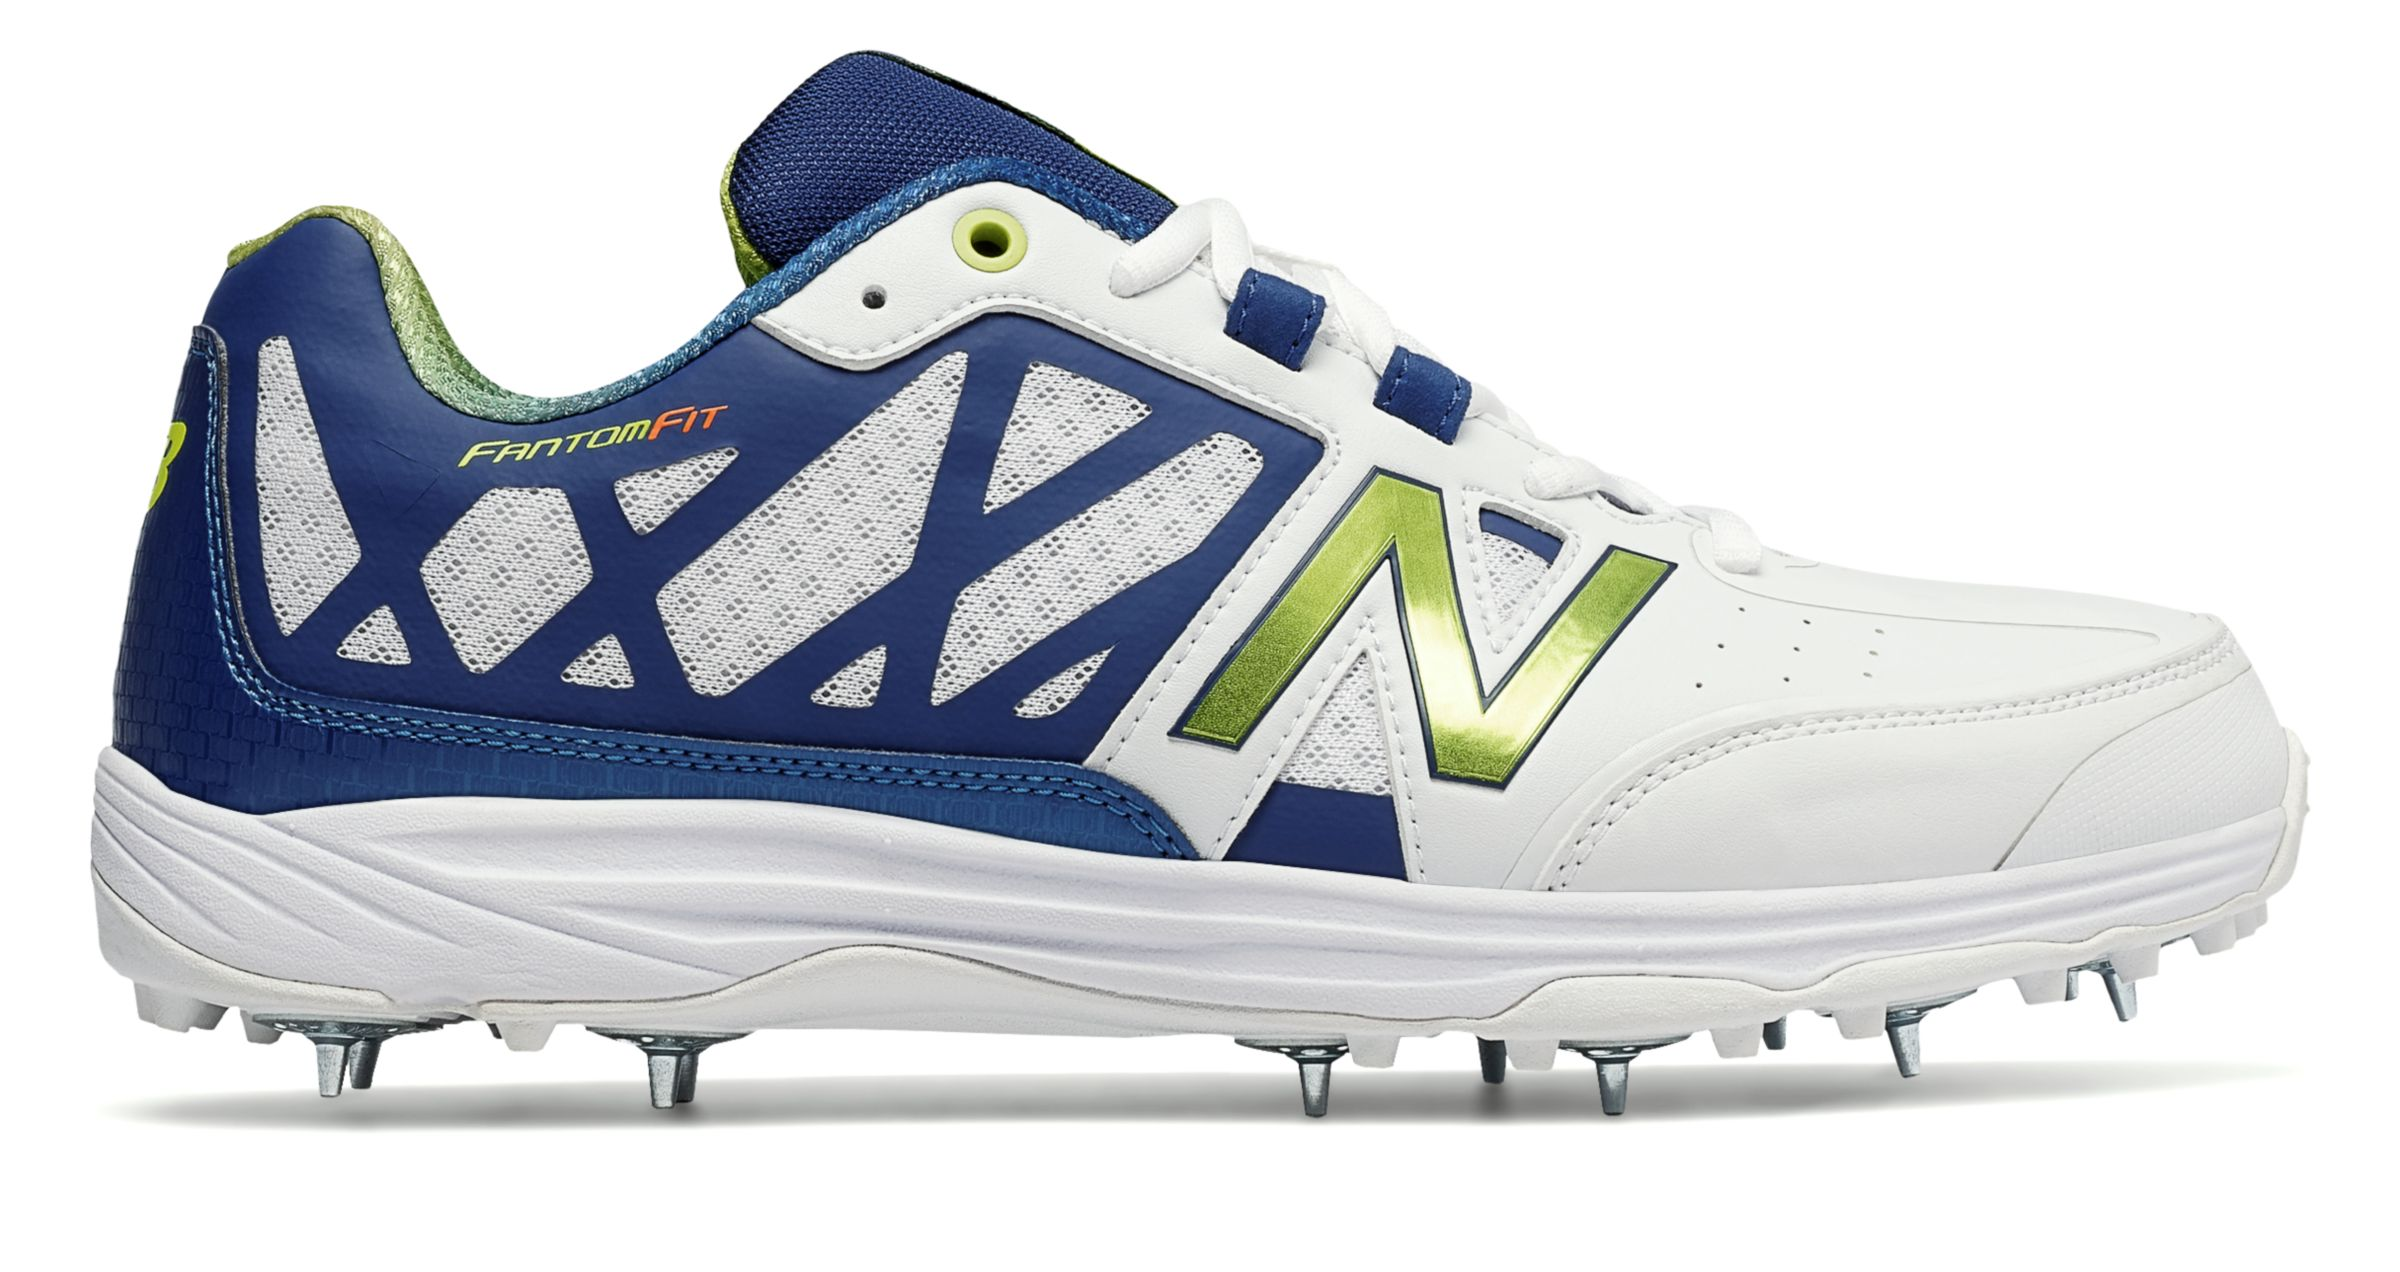 New Balance : New Balance 10V2 Minimus Cricket : Men's Cricket : CK10NA2